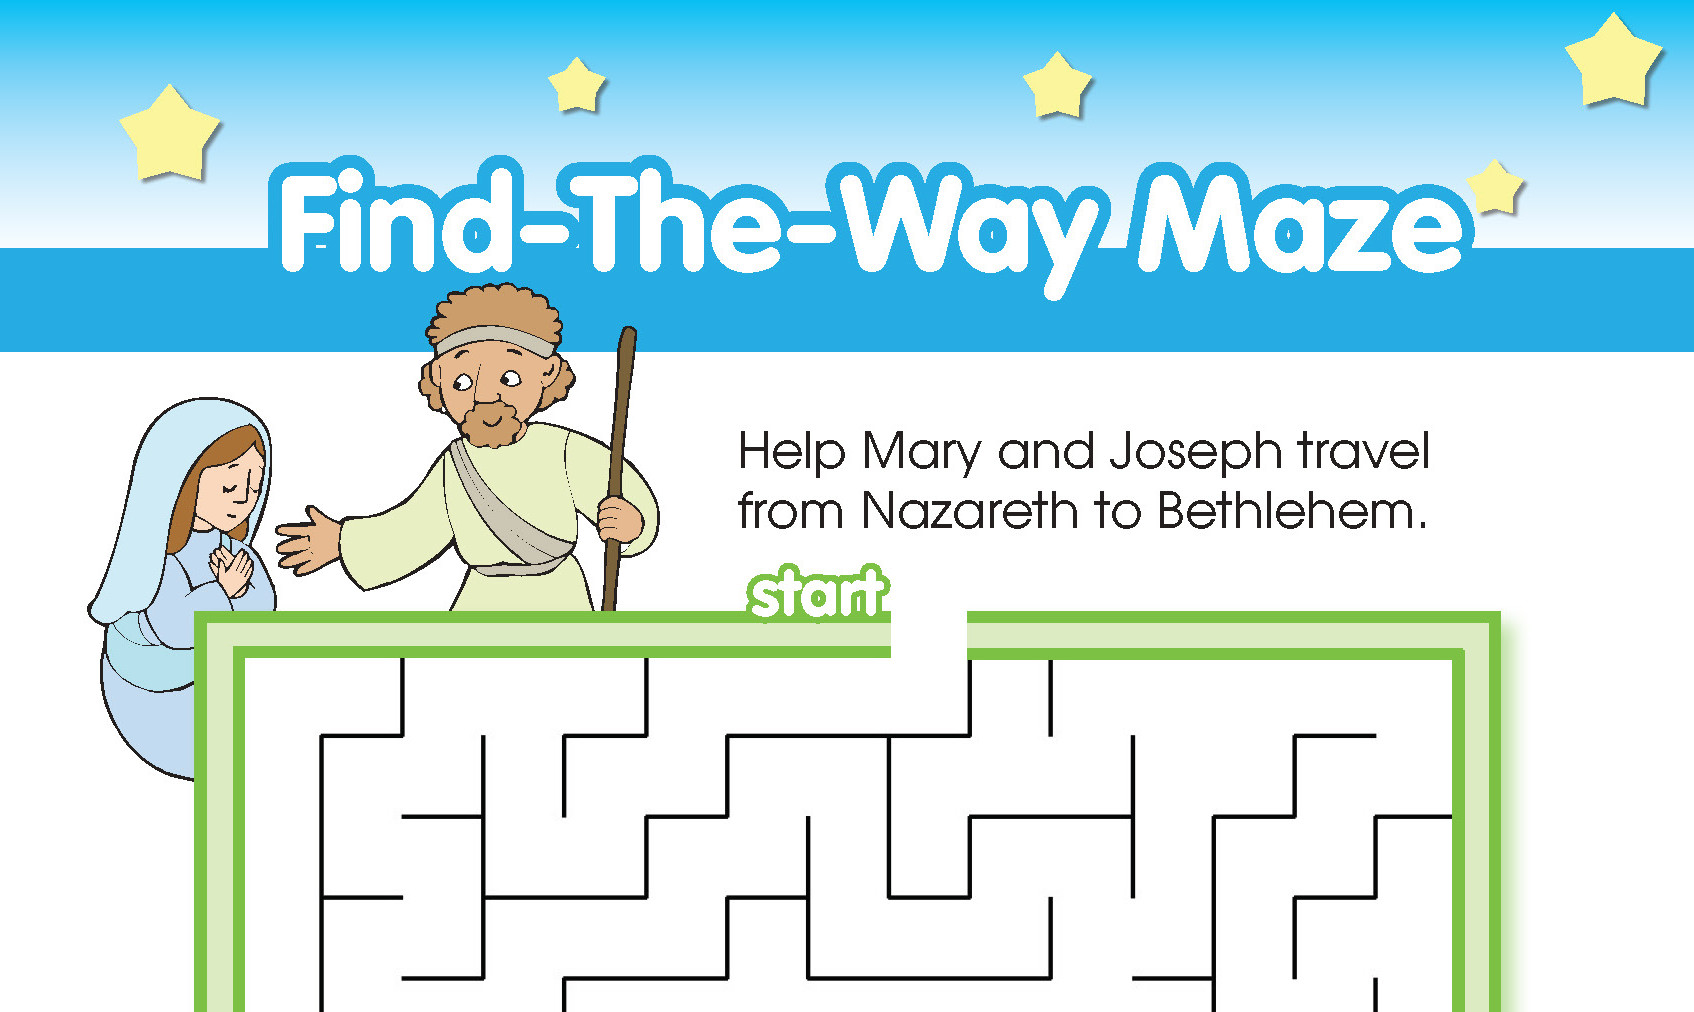 mary and joseph travel to bethlehem coloring pages - find the way maze kim mitzo thompson